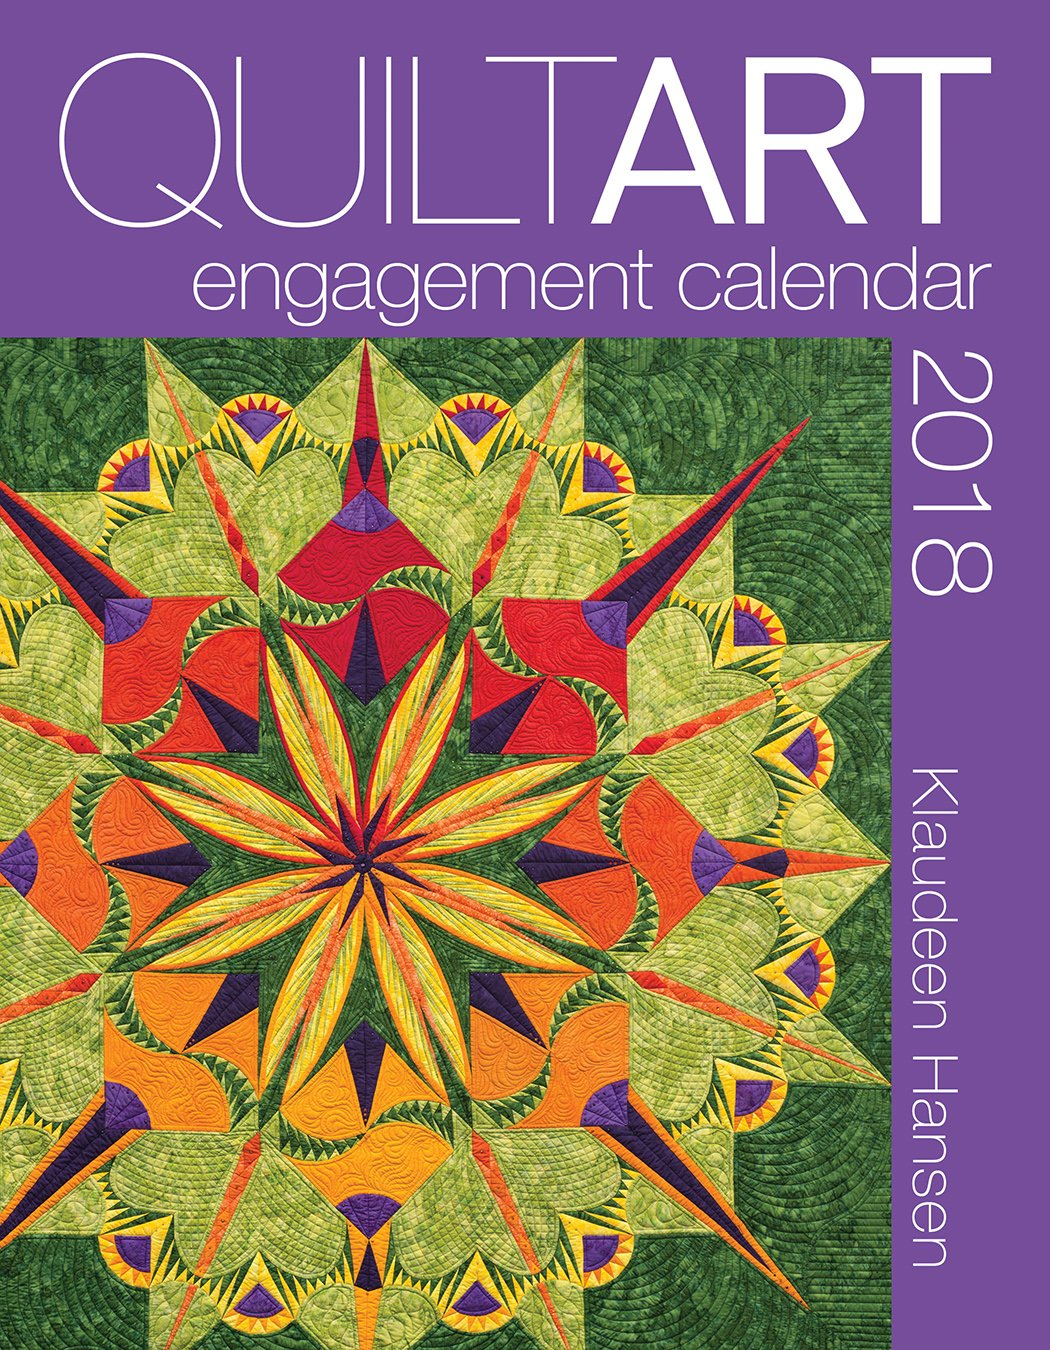 2018 Quilt Art Engagement Calendar